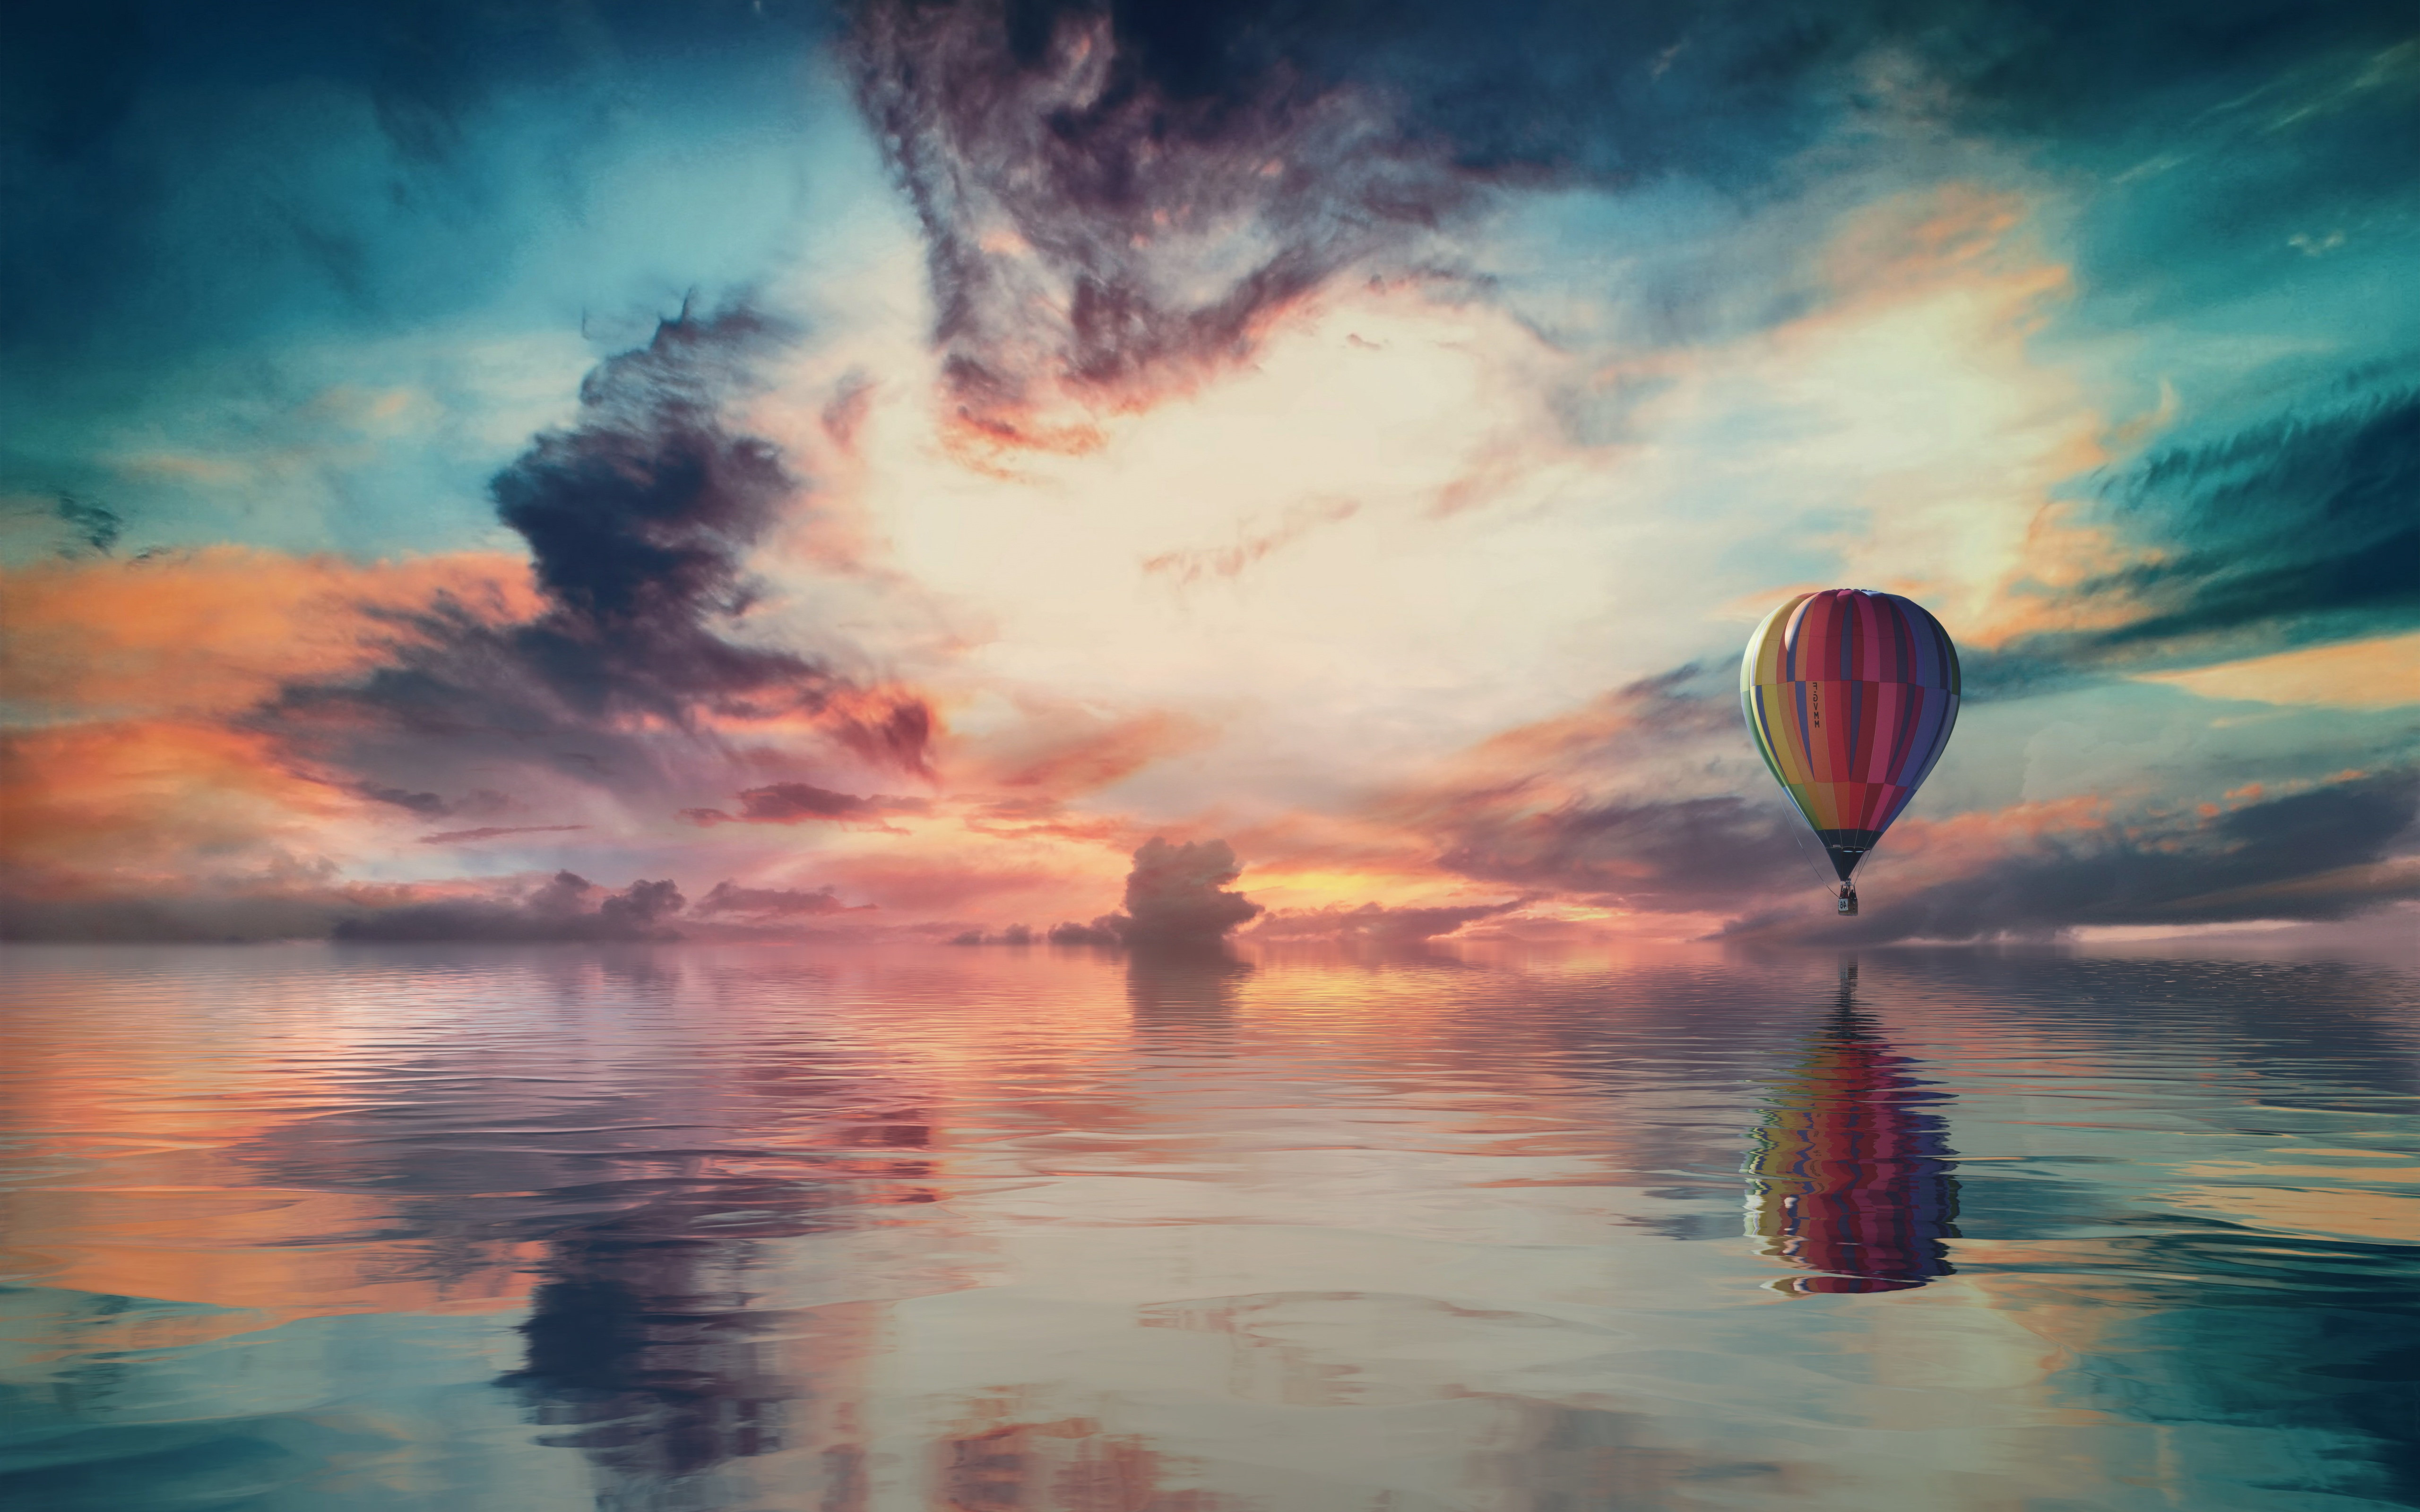 Fantasy travel with the hot air balloon wallpaper 5120x3200